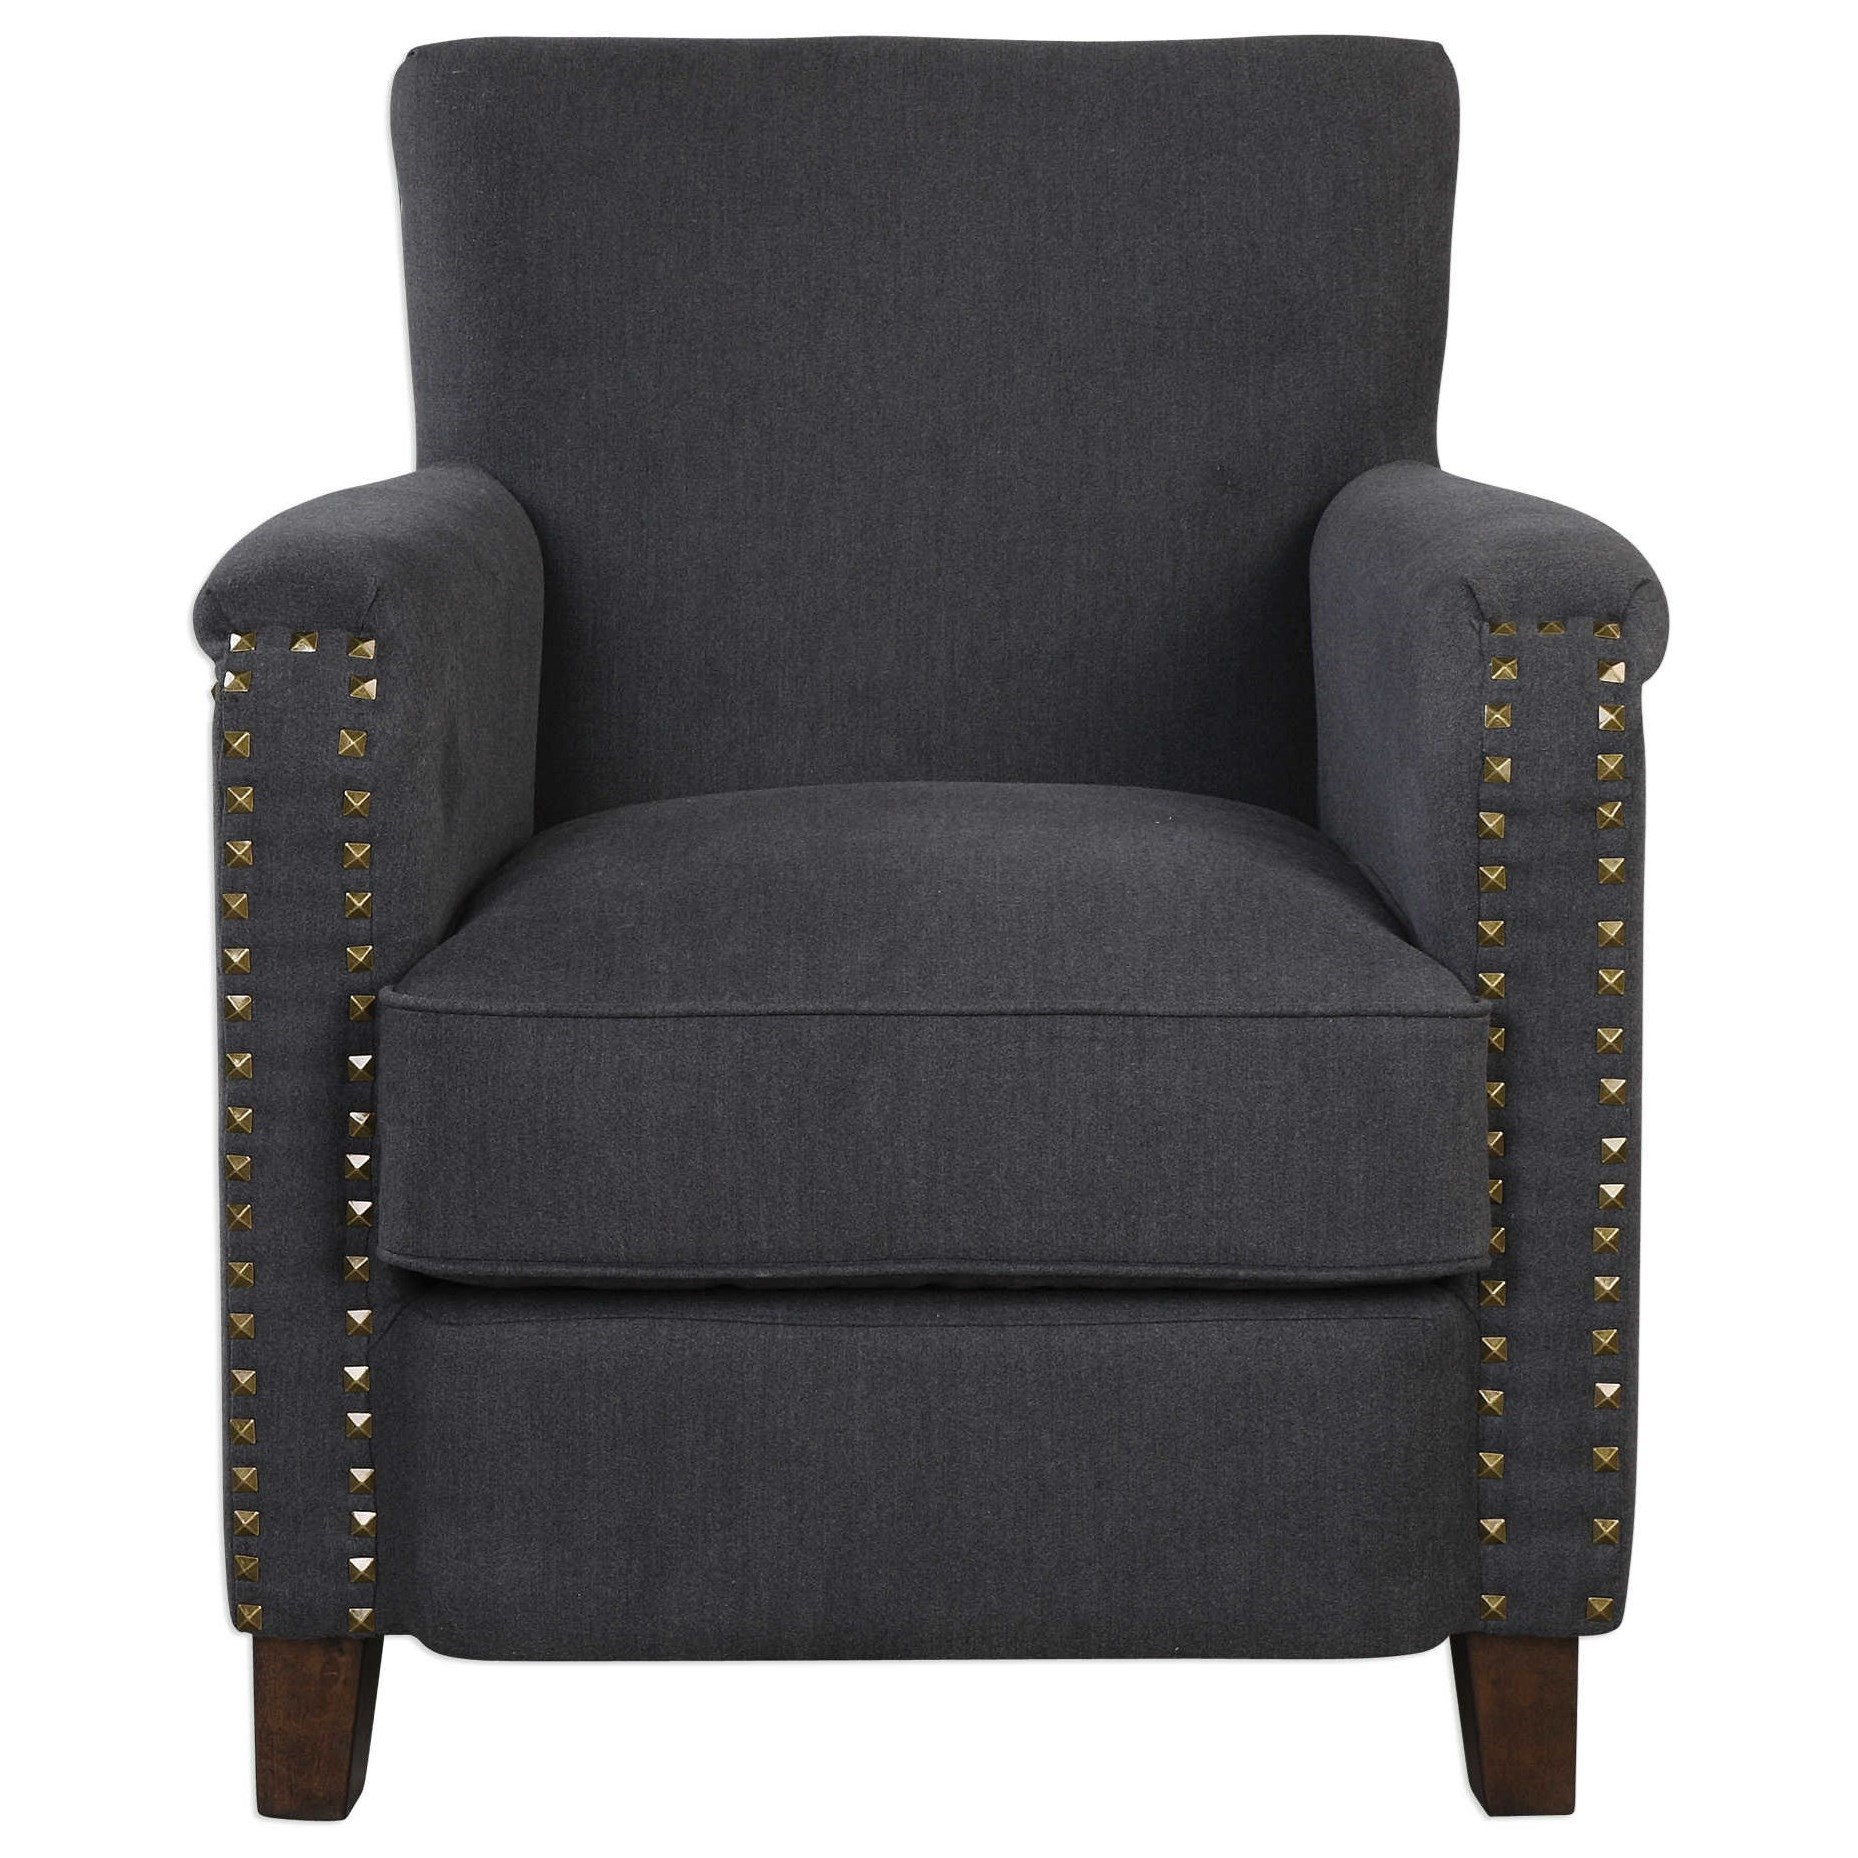 Uttermost Accent Furniture Finchly Deep Gray Armchair - Item Number: 23371